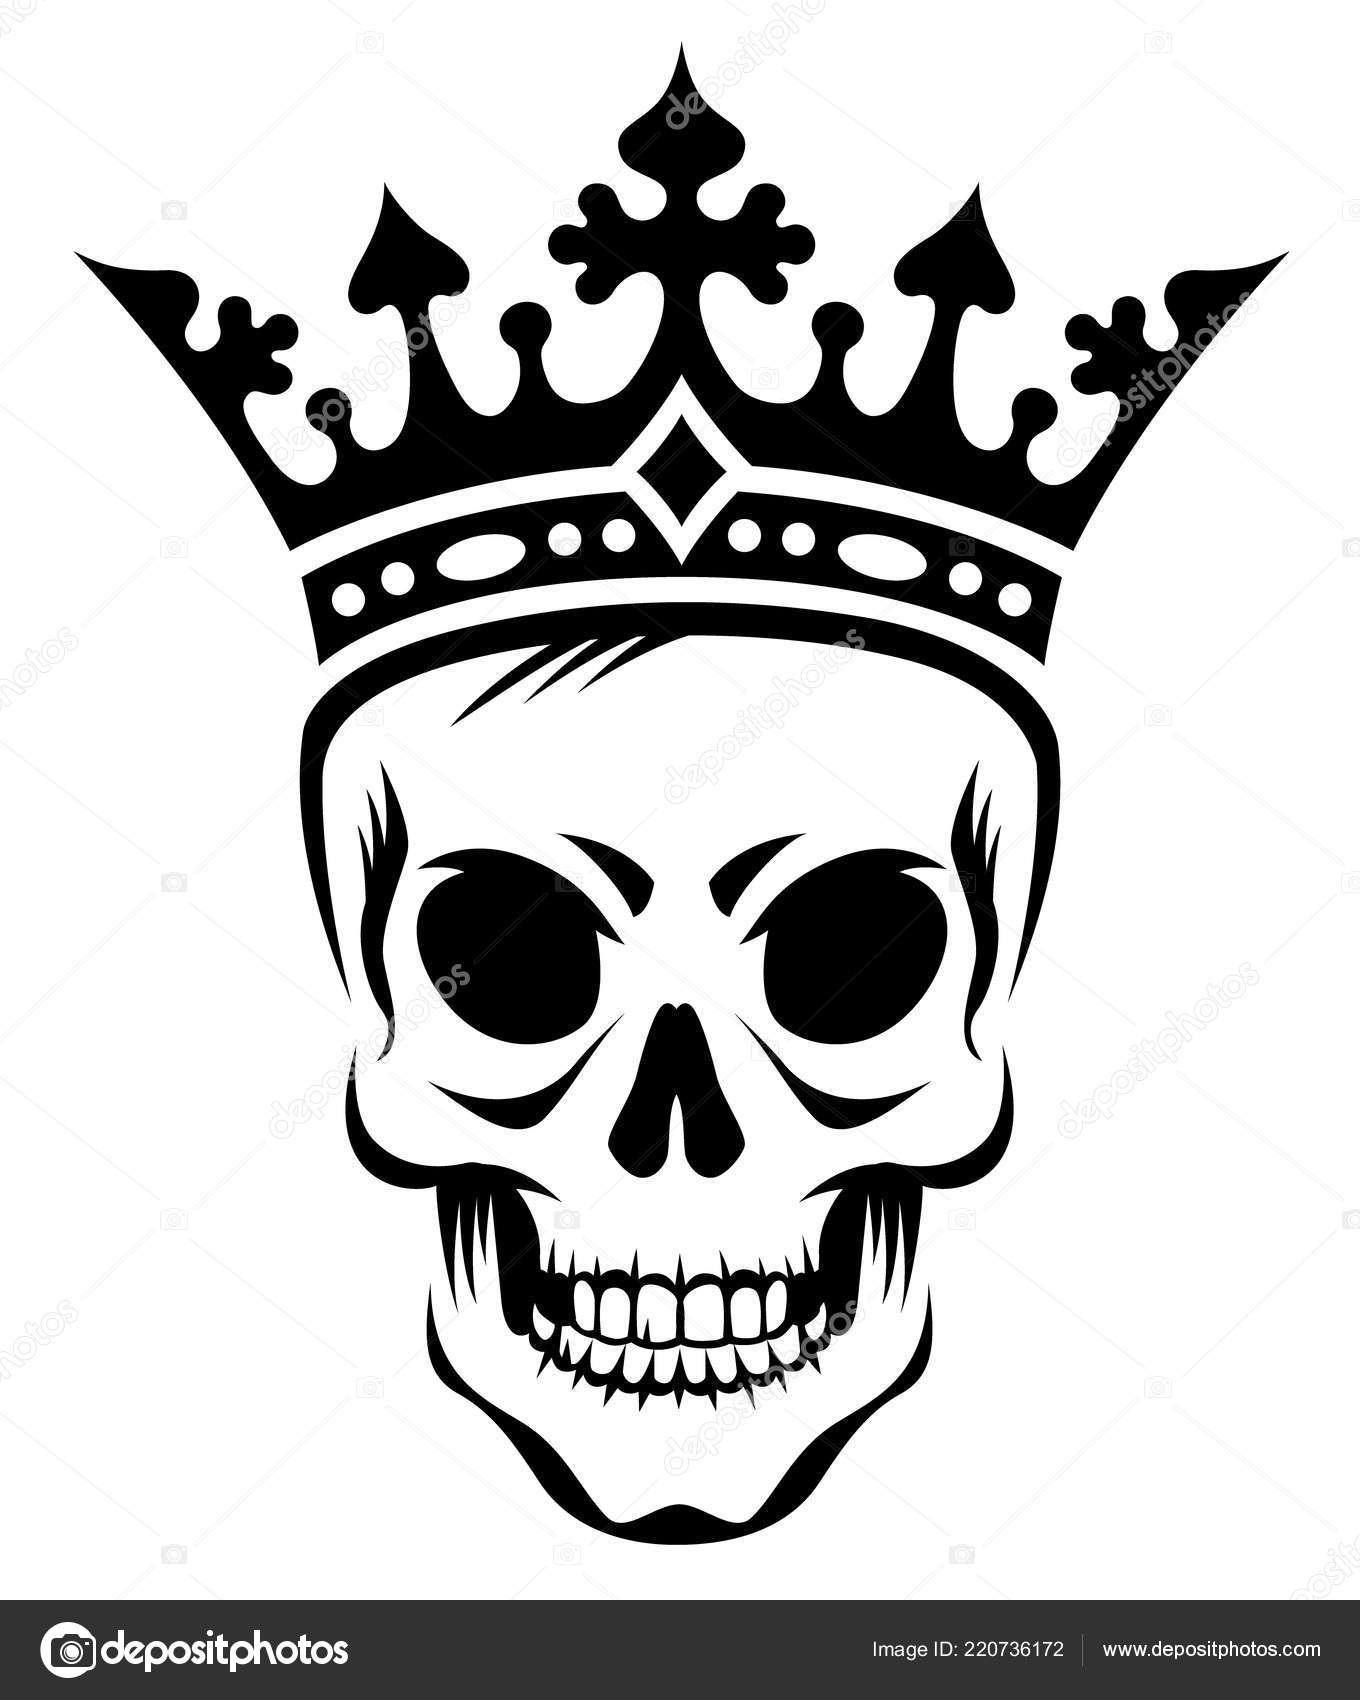 Angry Skull King Crown Stylized Black Illustration